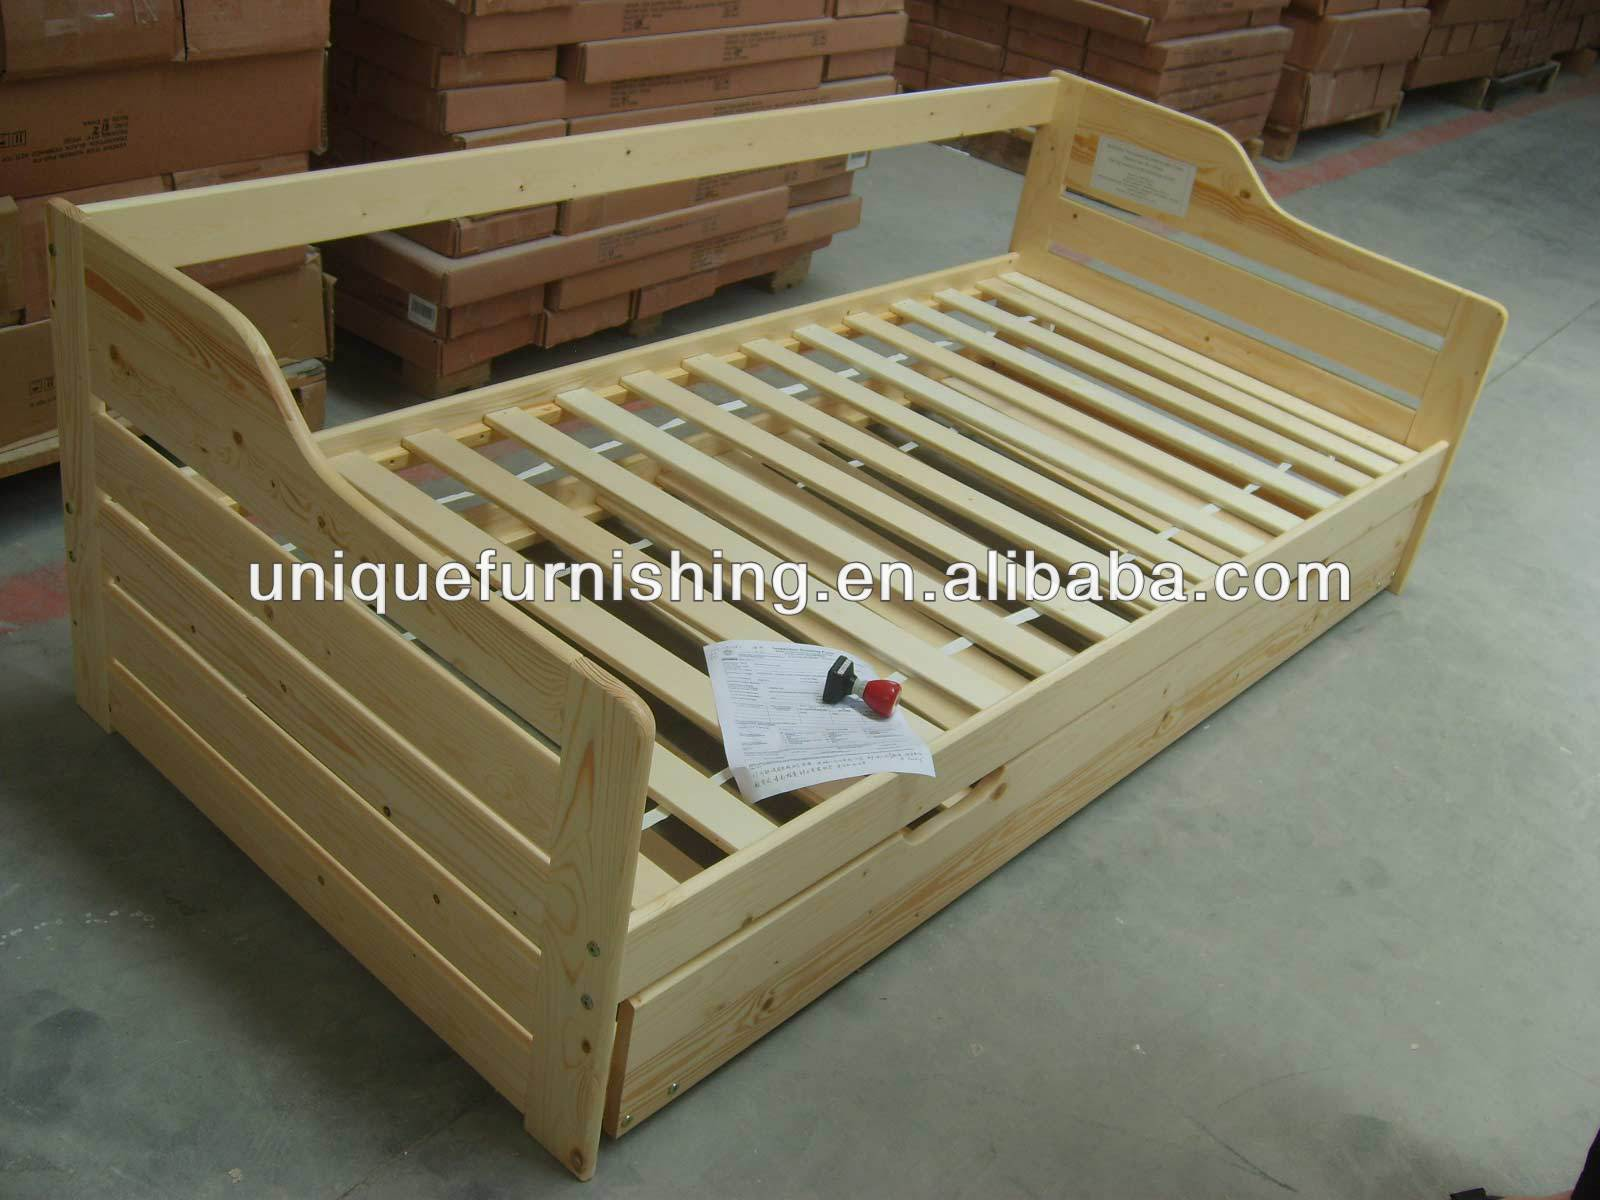 Modern quality solid pine wood box bed designs for sofa for Furniture box